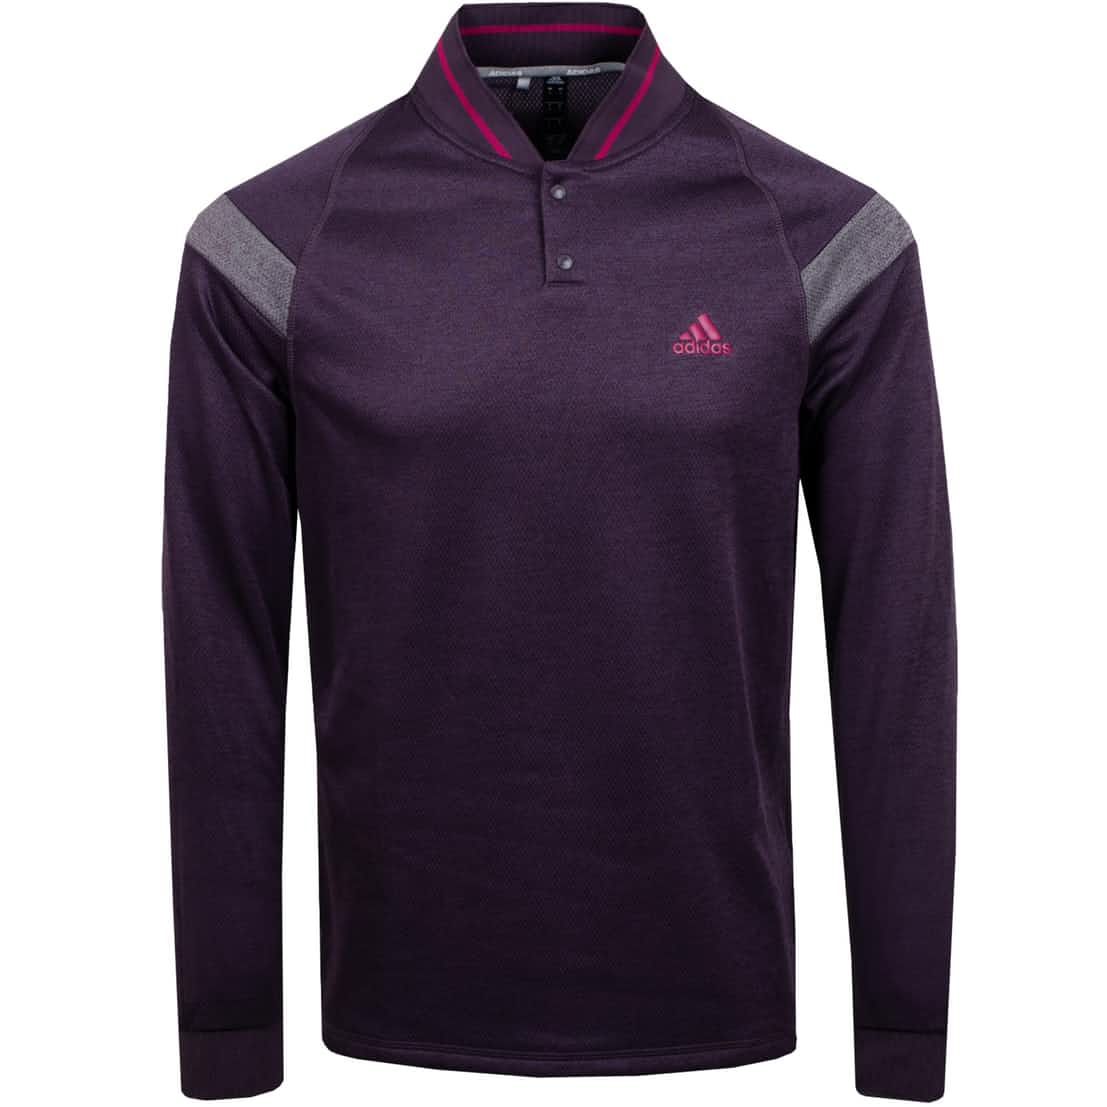 Golf Warmth Blade Mesh Mid Noble Purple - AW20